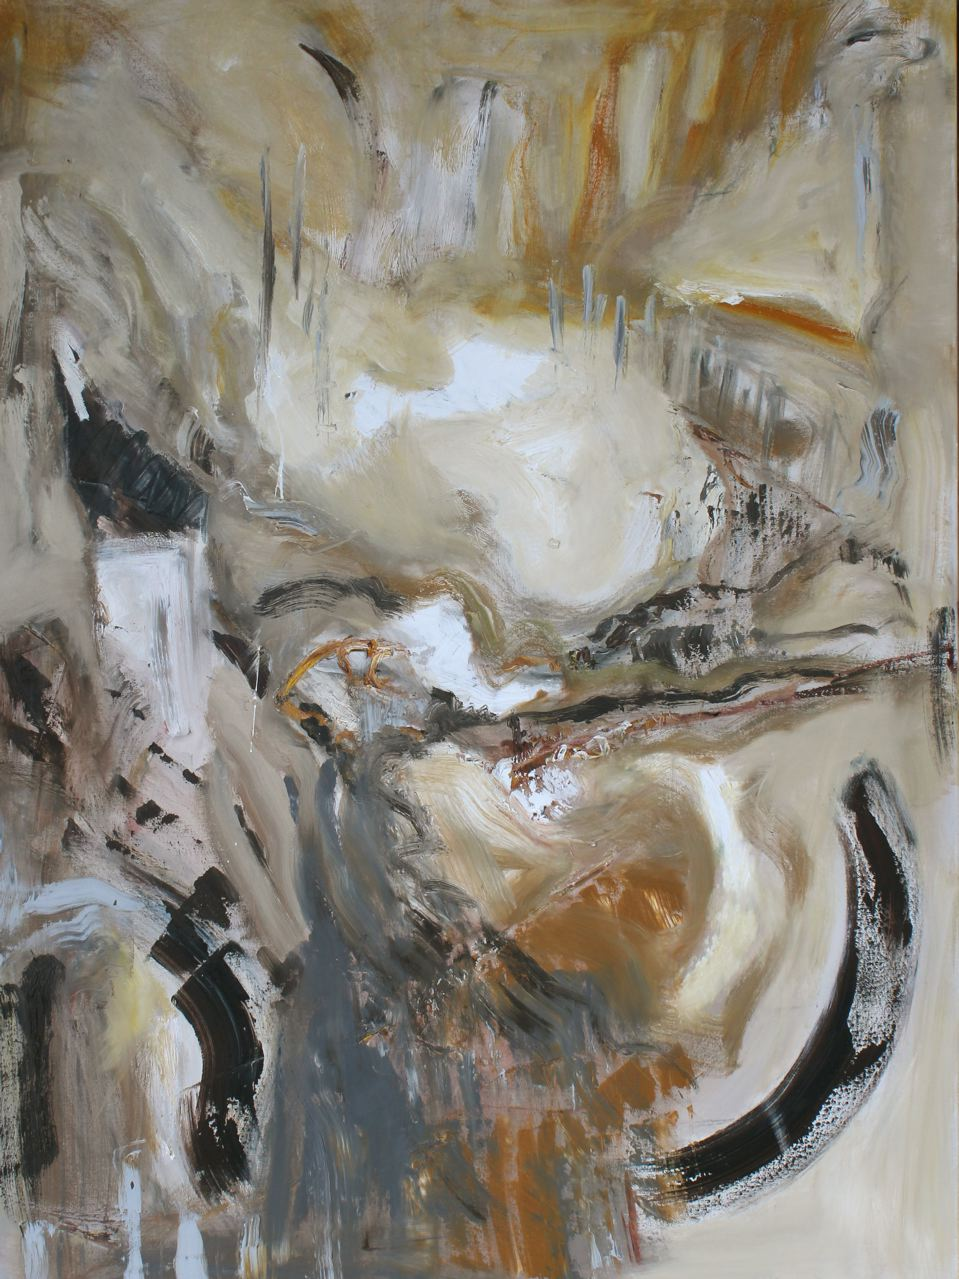 LJ-010, Elevation, 36x48, oil on canvas, 2015, $3,200